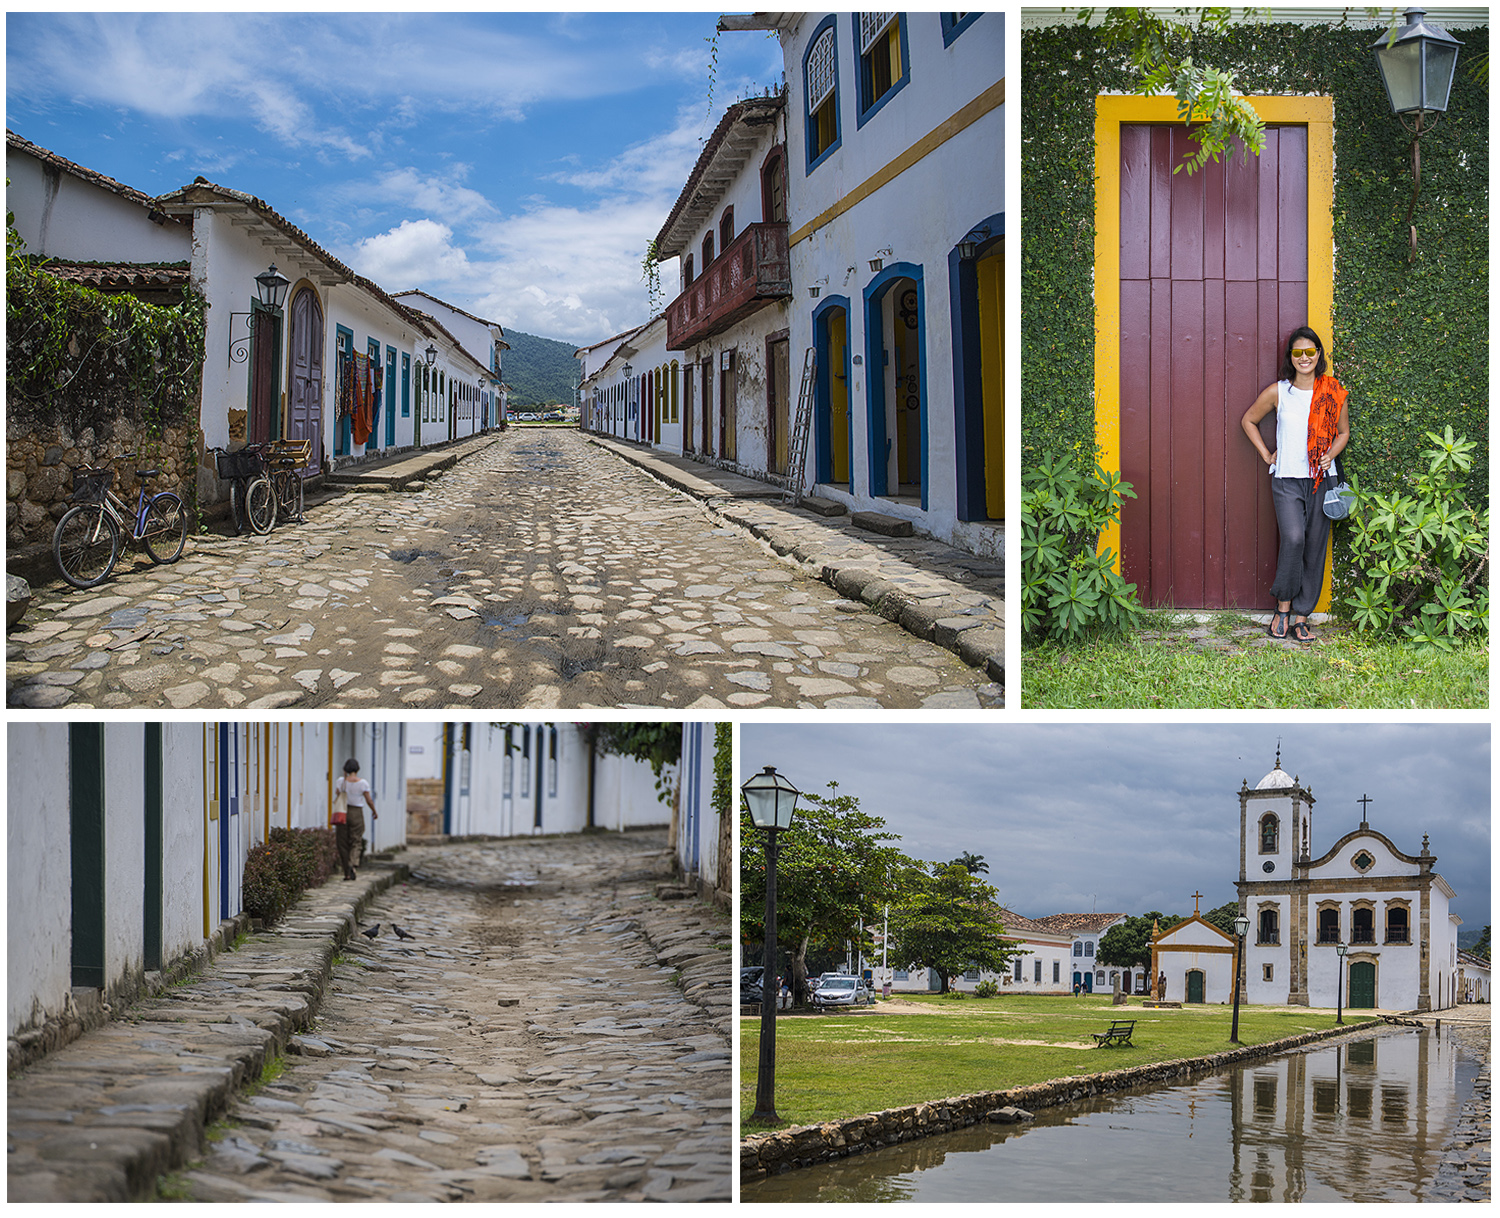 some impressions from Paraty